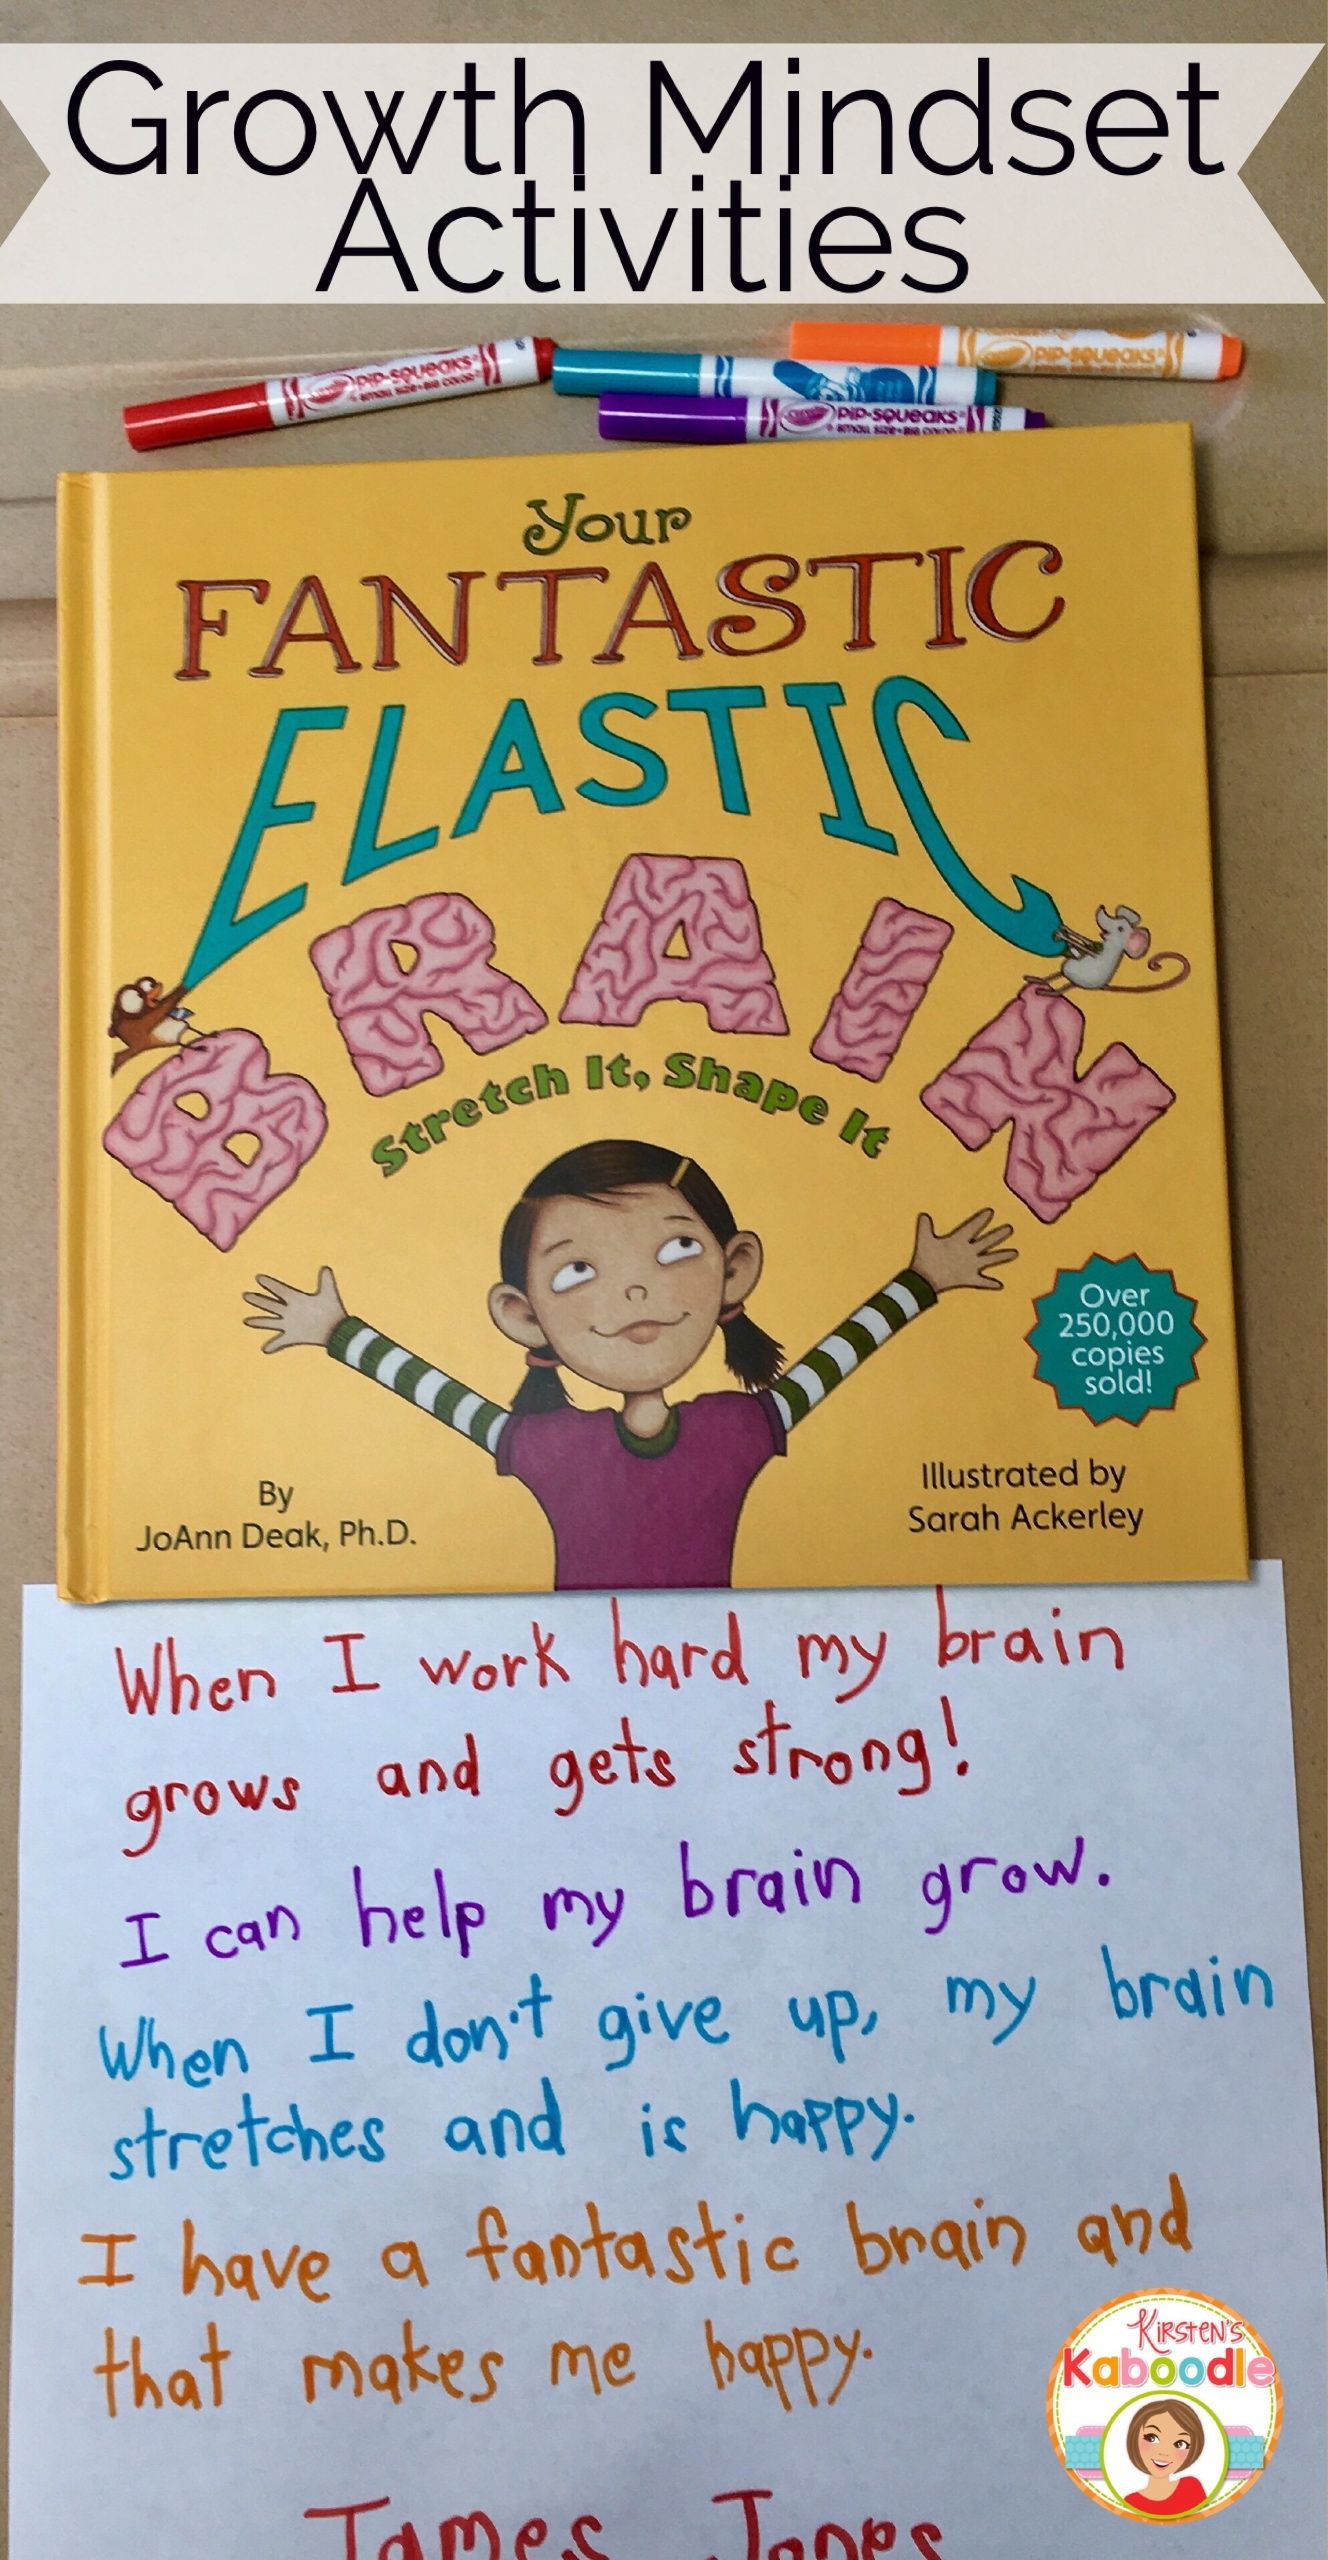 Teaching Growth Mindset With Your Fantastic Elastic Brain